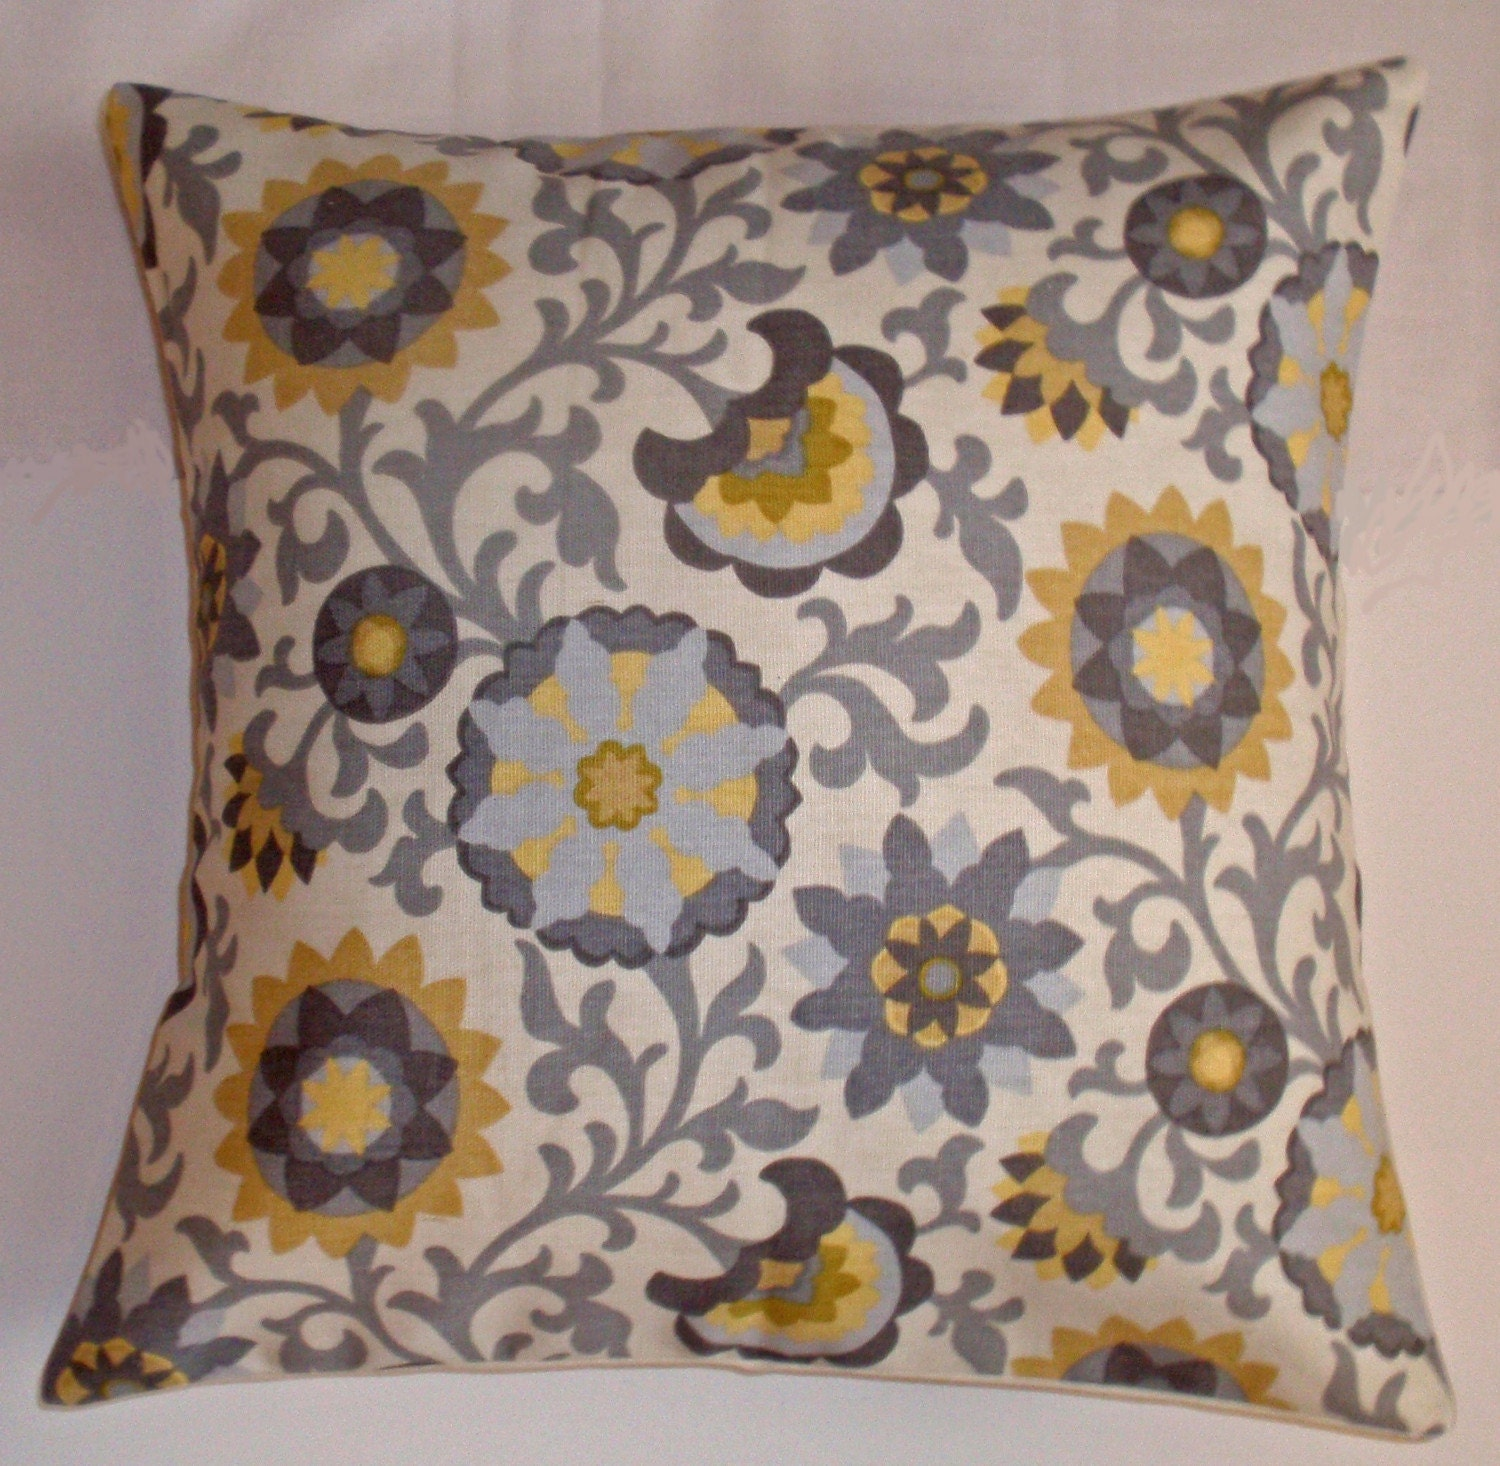 Throw Pillow 16x16 Removable cover sewn with Waverly s